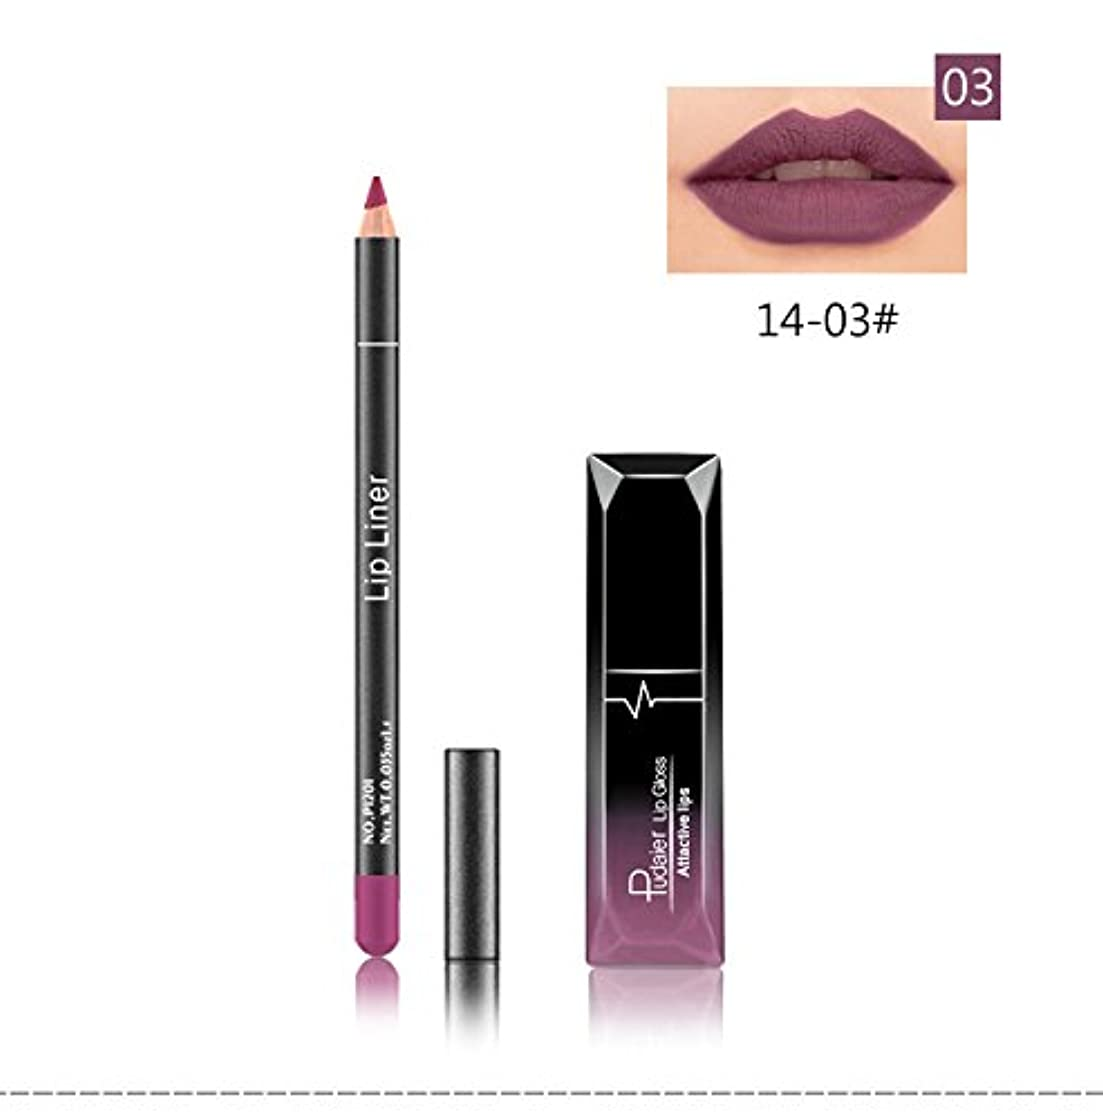 潜在的な鉱石側溝(03) Pudaier 1pc Matte Liquid Lipstick Cosmetic Lip Kit+ 1 Pc Nude Lip Liner Pencil MakeUp Set Waterproof Long Lasting Lipstick Gfit